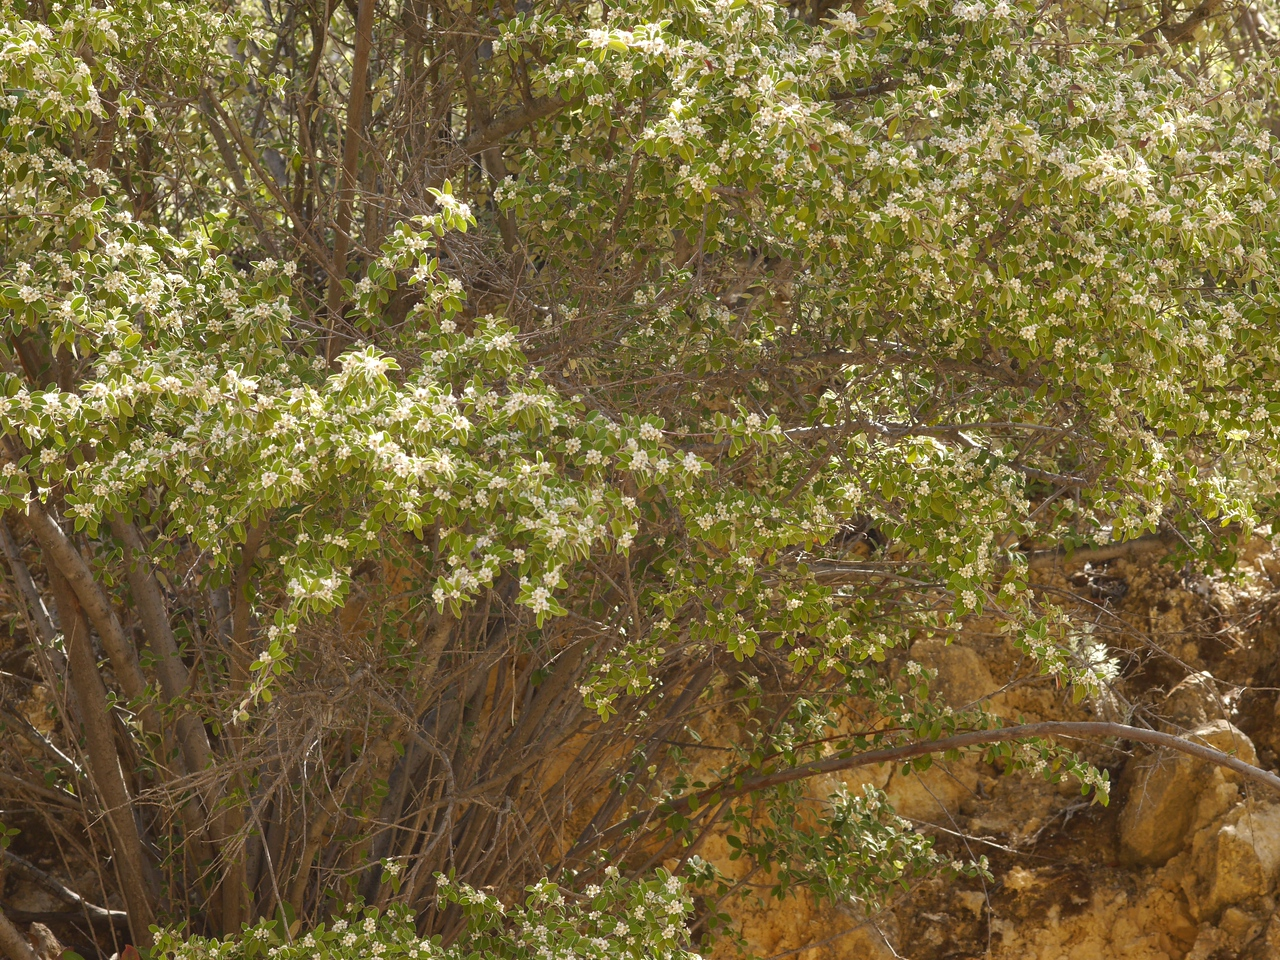 A flowering bush that I didn't recognize.<br /> <br /> A good walk in a year that seemed hopeless when the winter rains were delayed.  For some plants, the late rains were just what they needed for a good bloom.